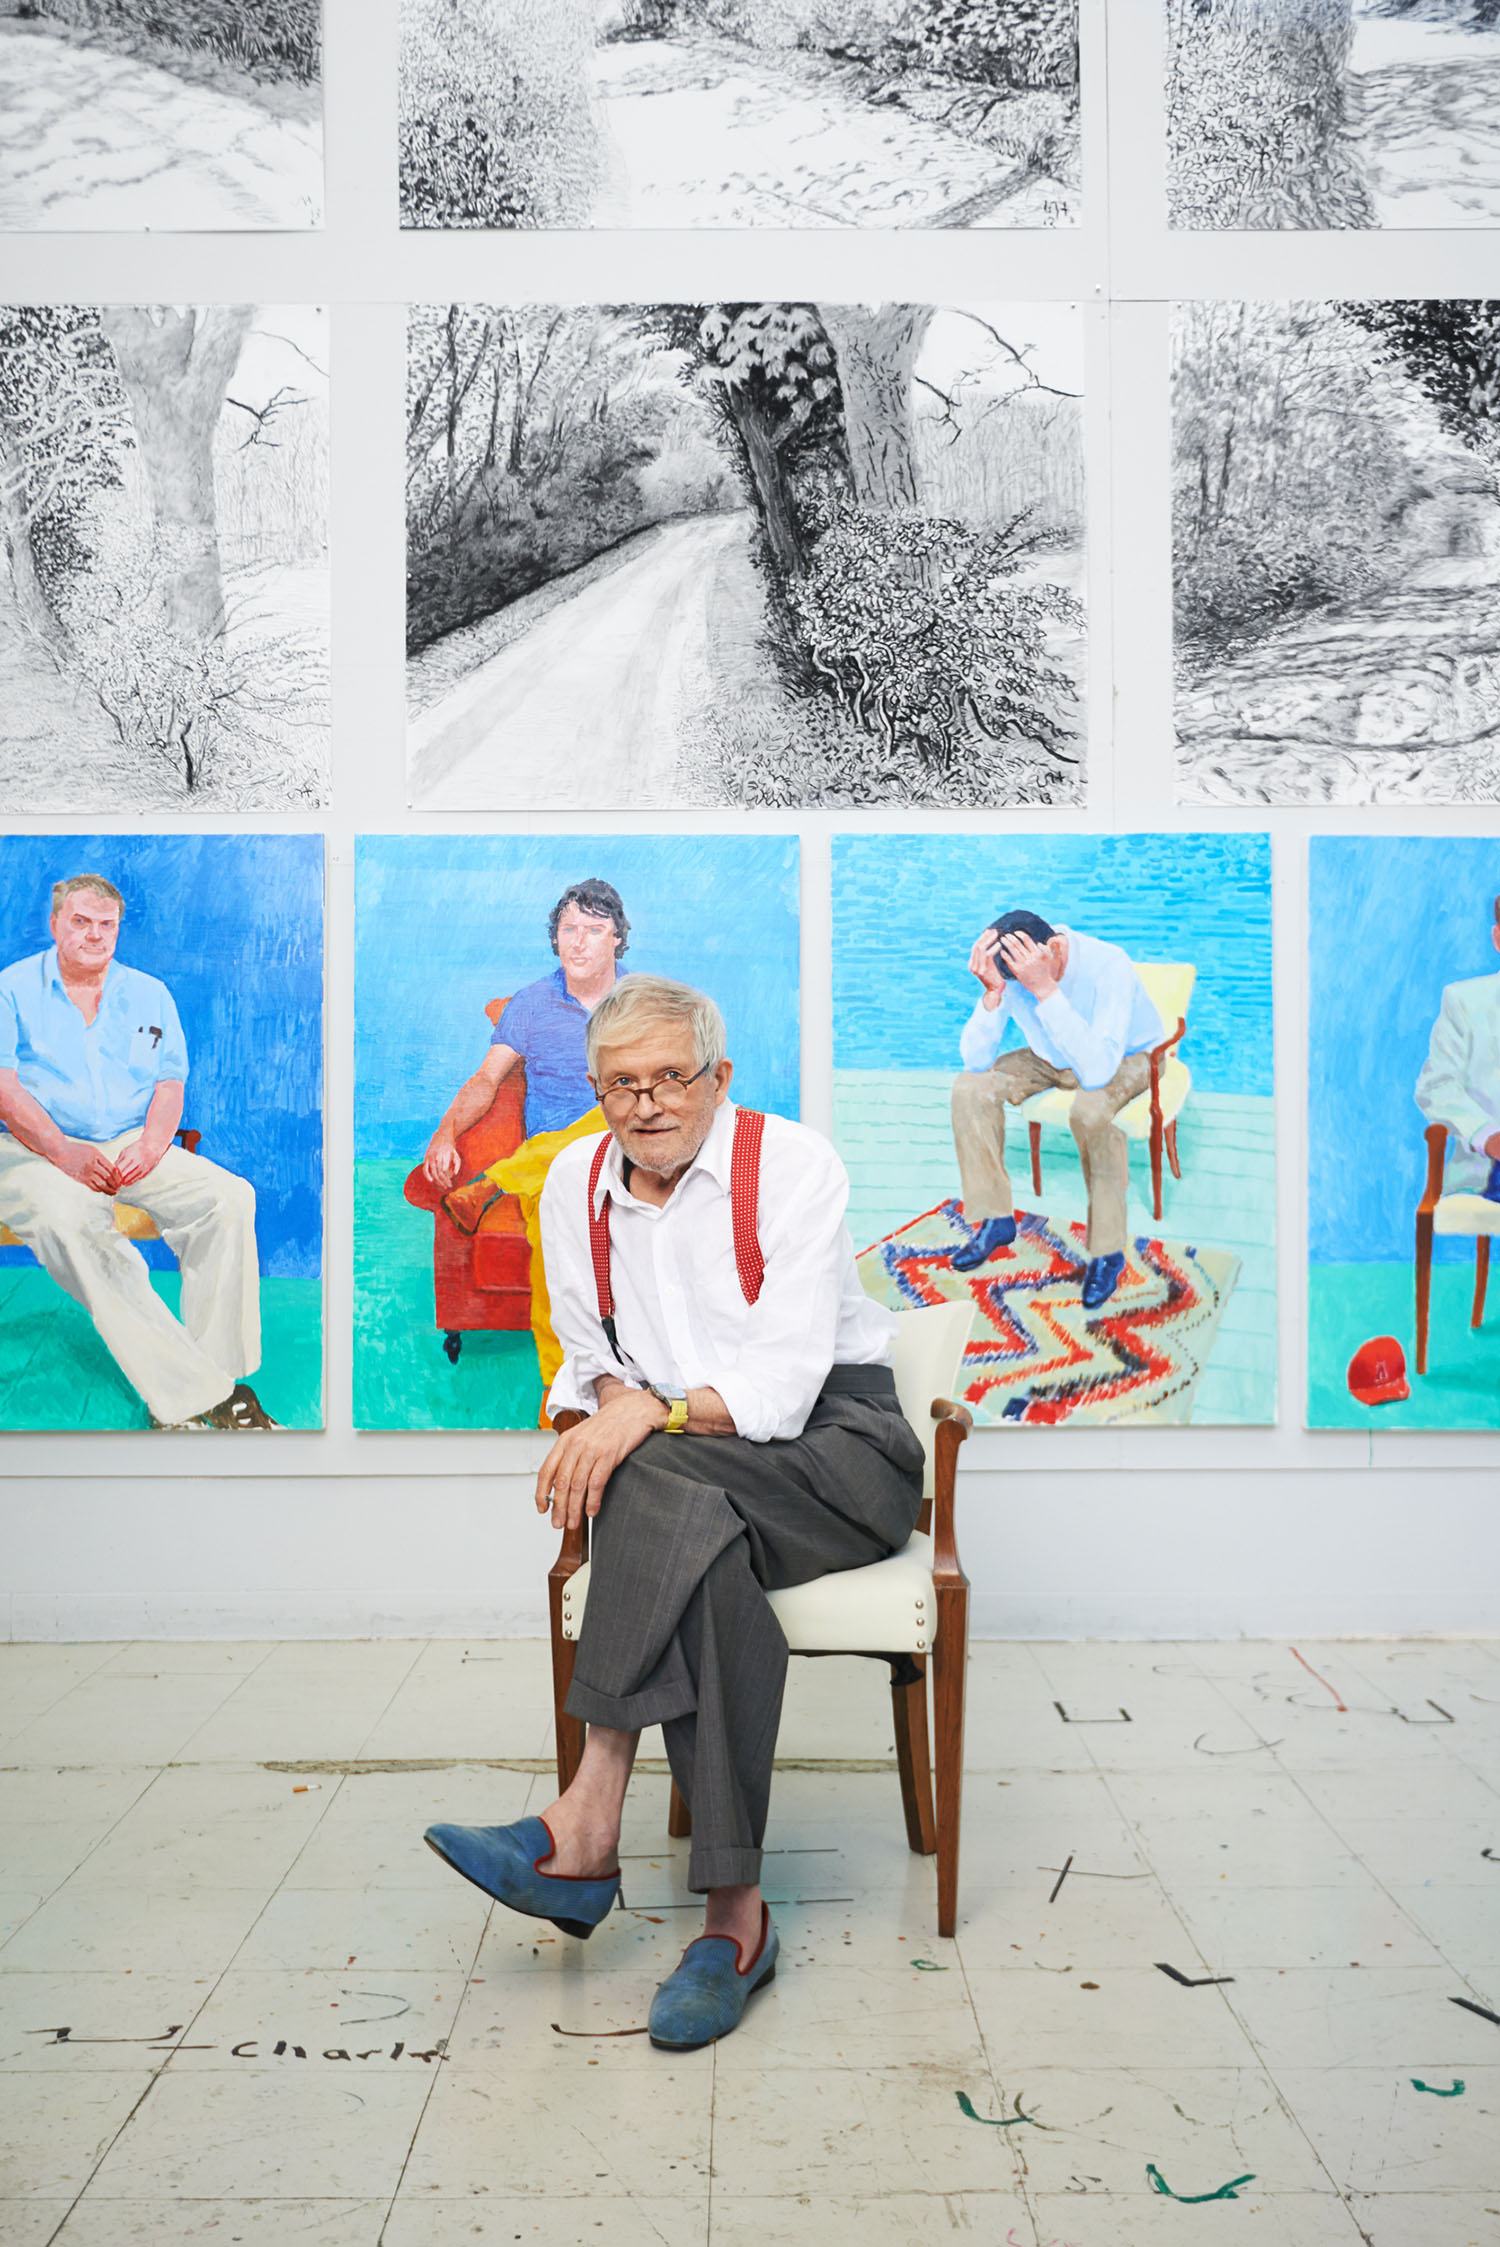 David Hockney, Artist, Los Angeles, California, 2013